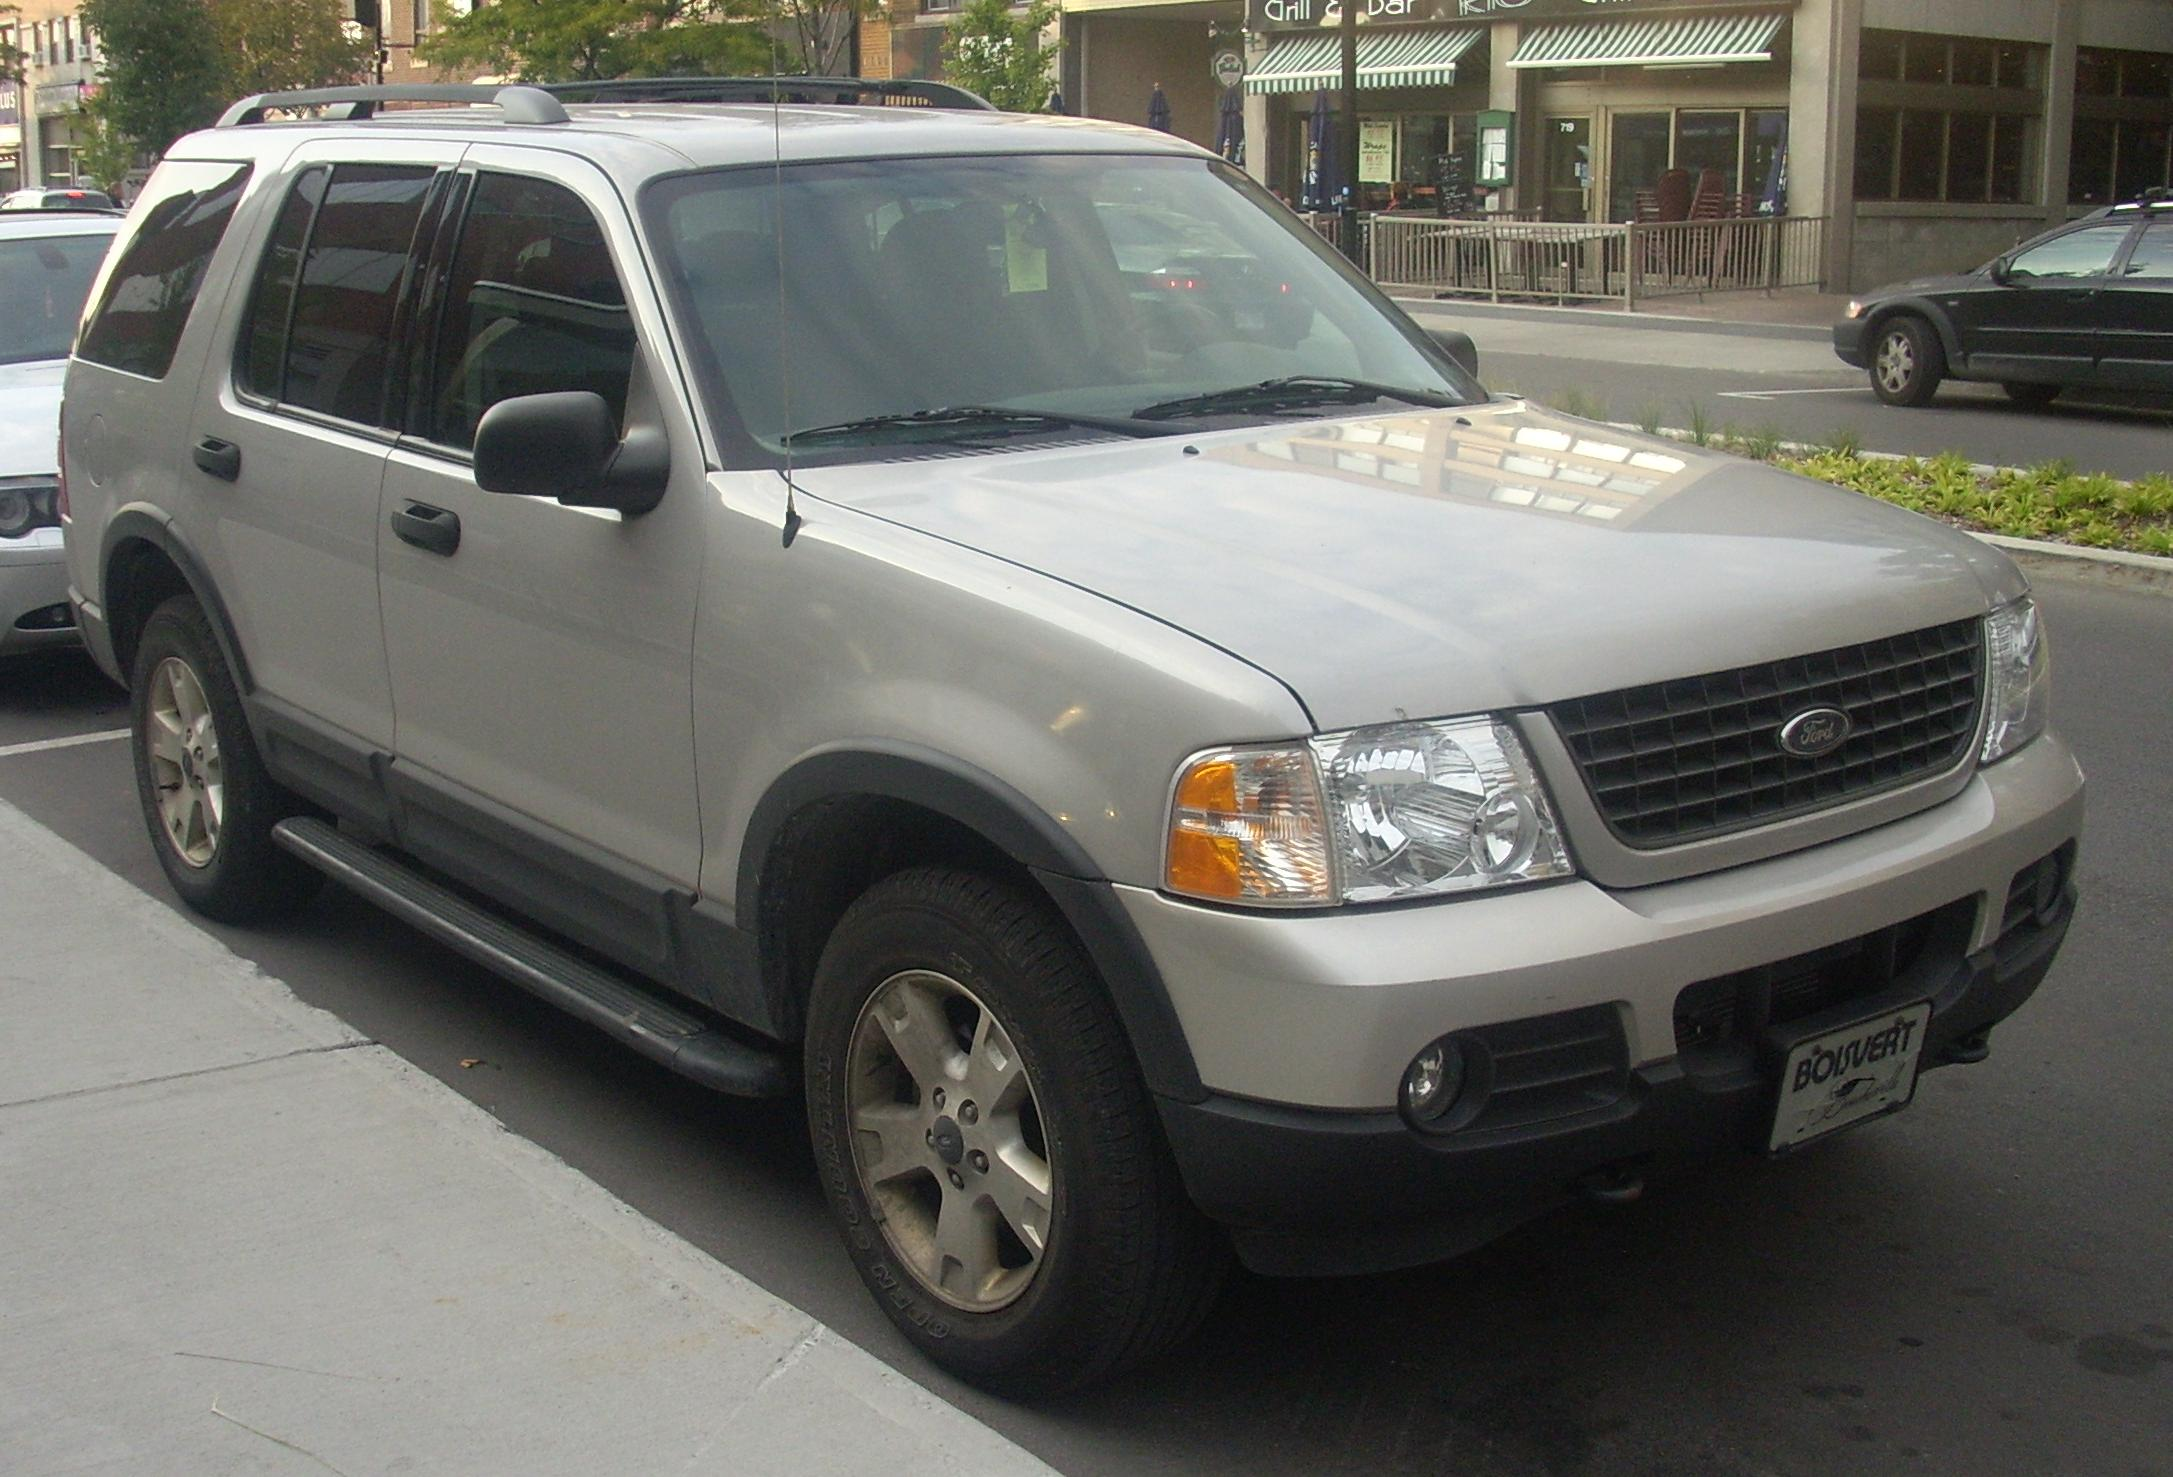 File Ford ExplorerJPG Wikimedia Commons - 2002 explorer